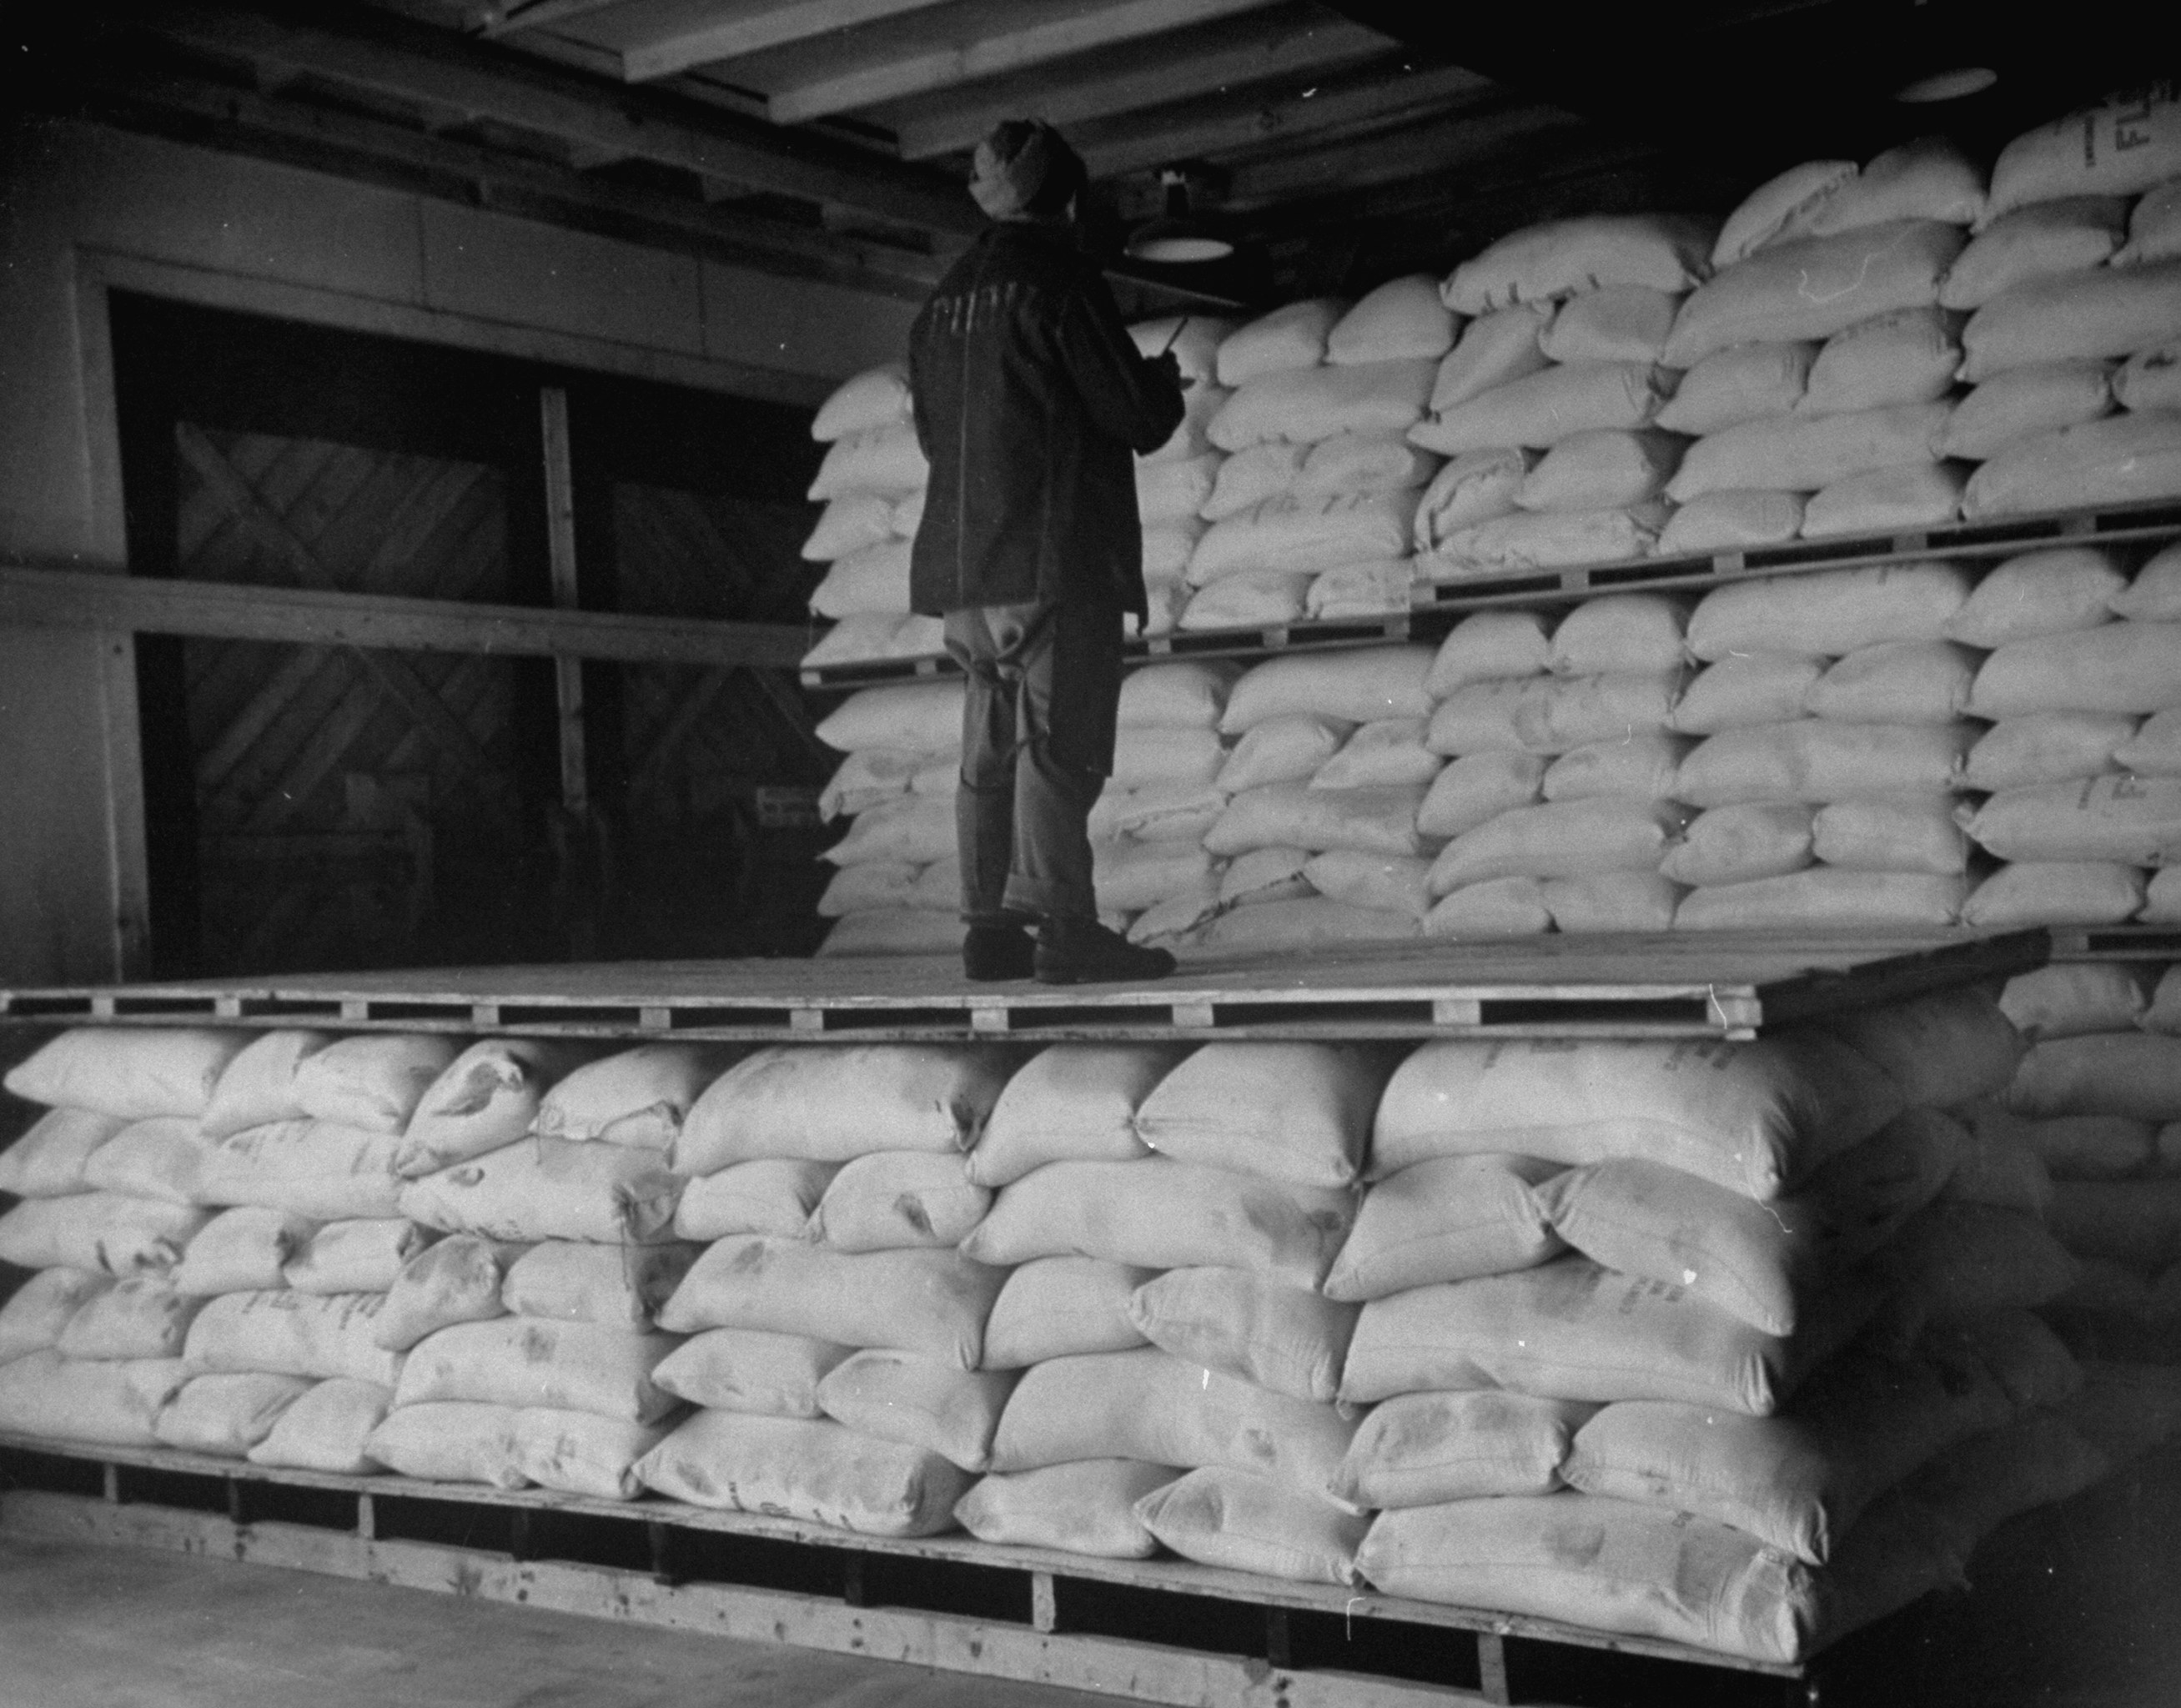 A man stands on bags as he surveys the storage room